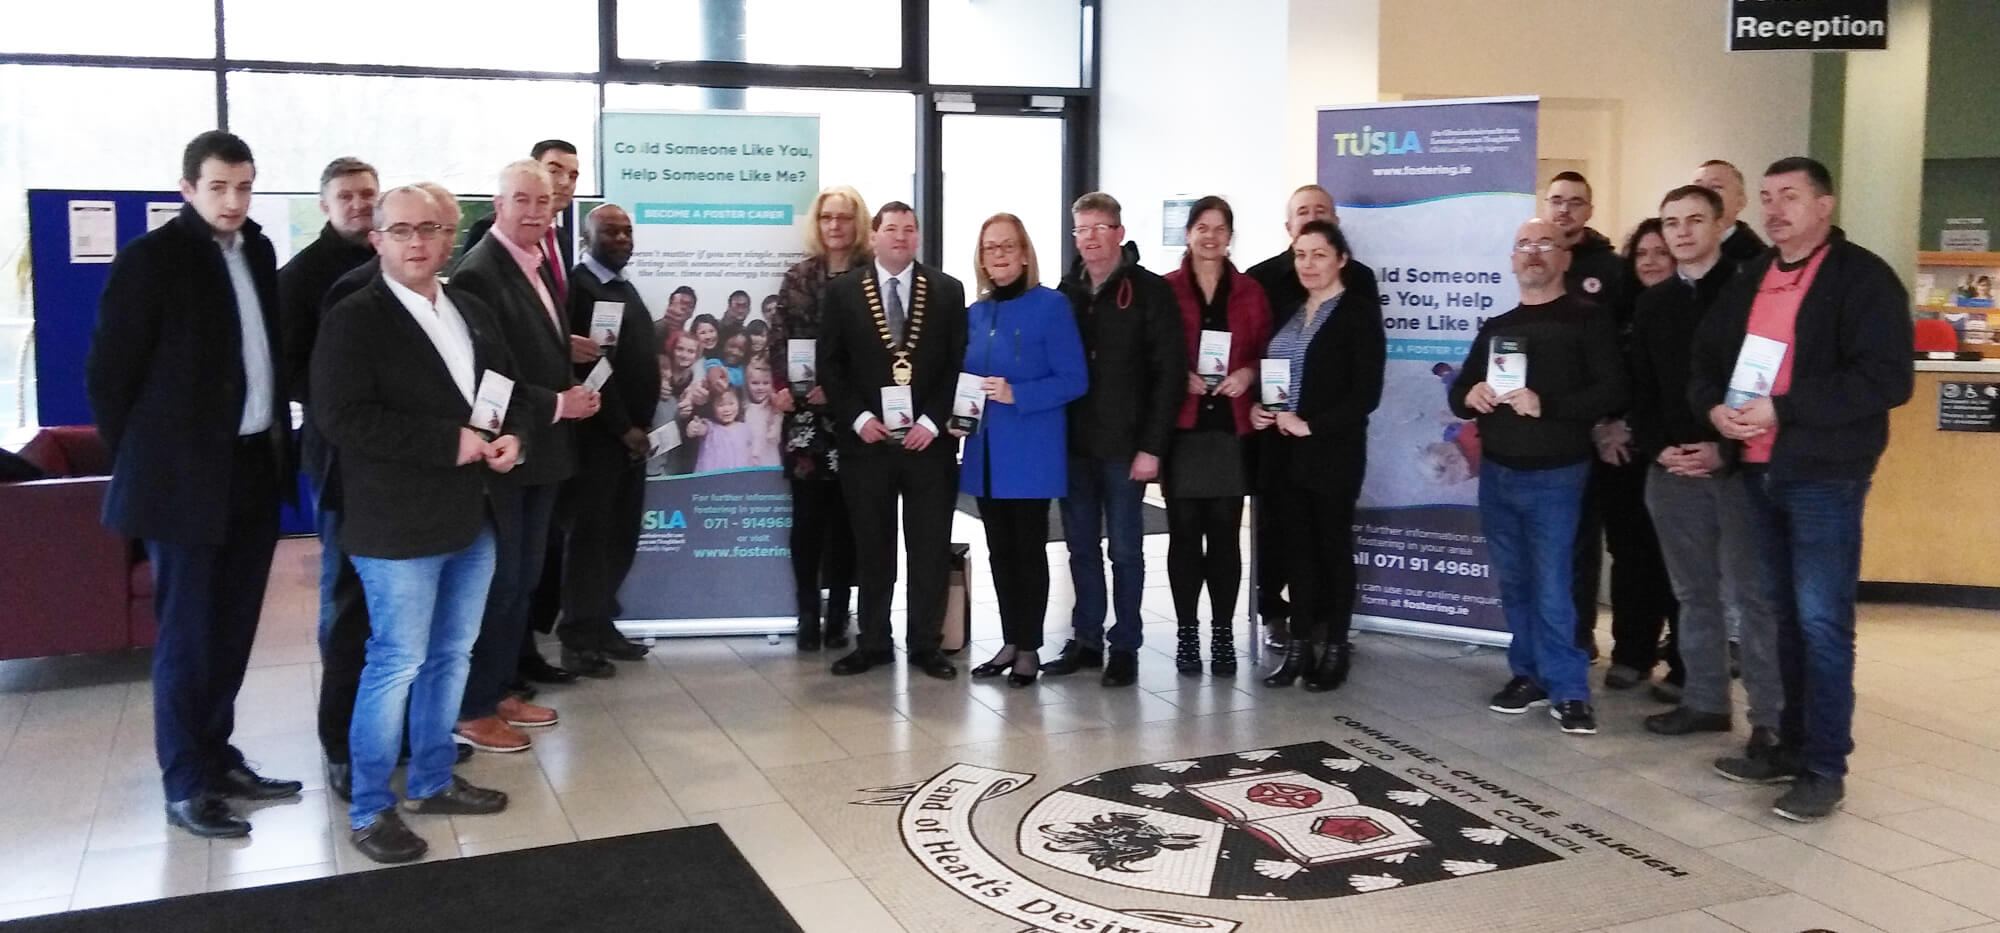 Foster Carer Information Stand Opened at County Hall